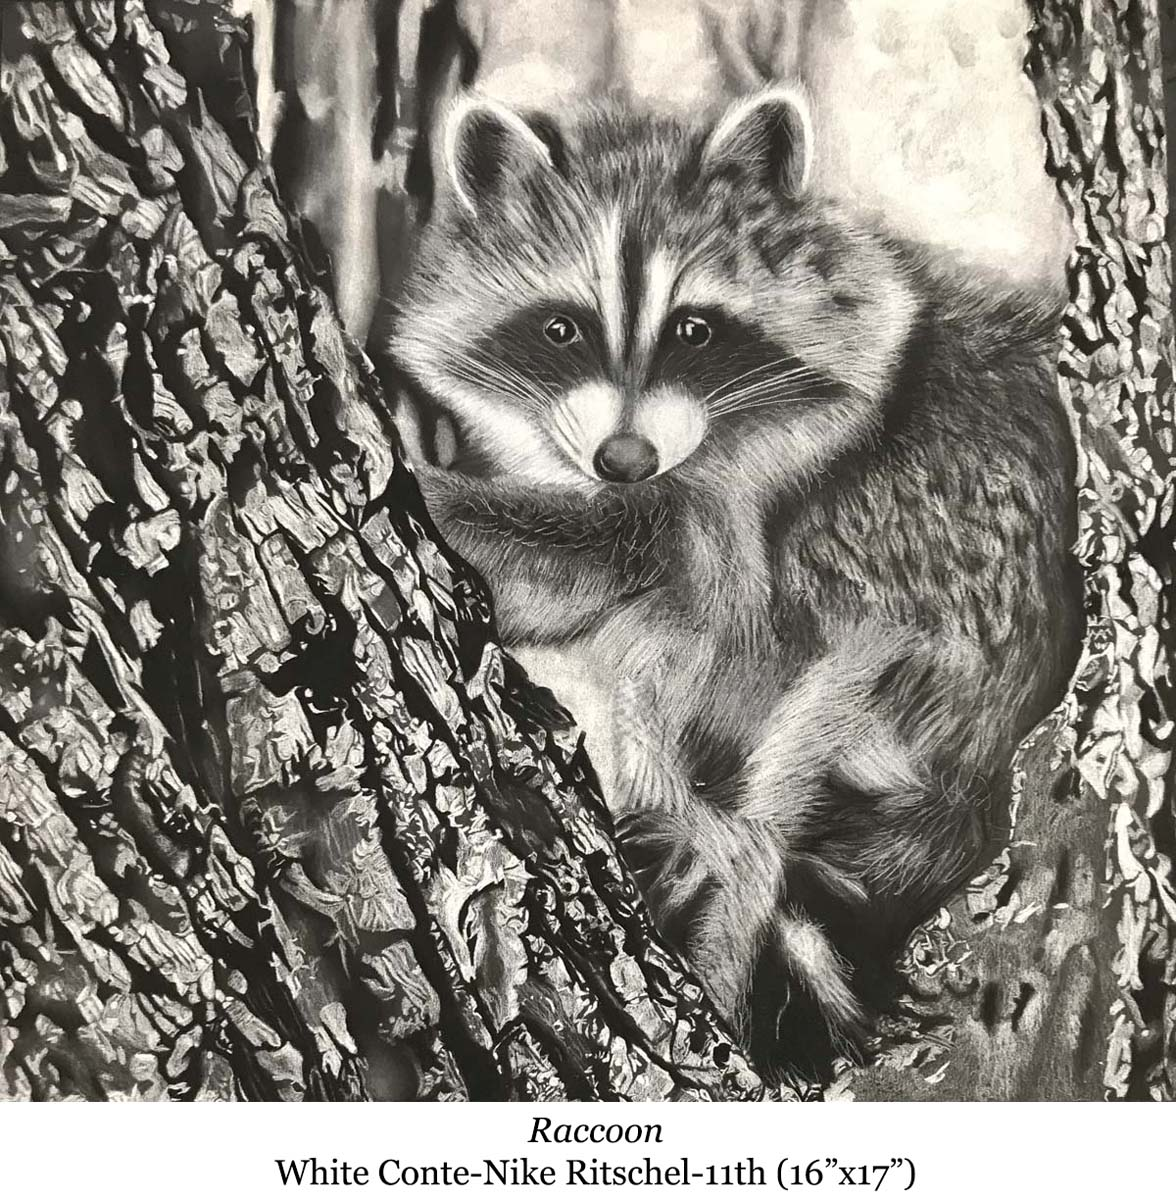 a drawing of raccoon